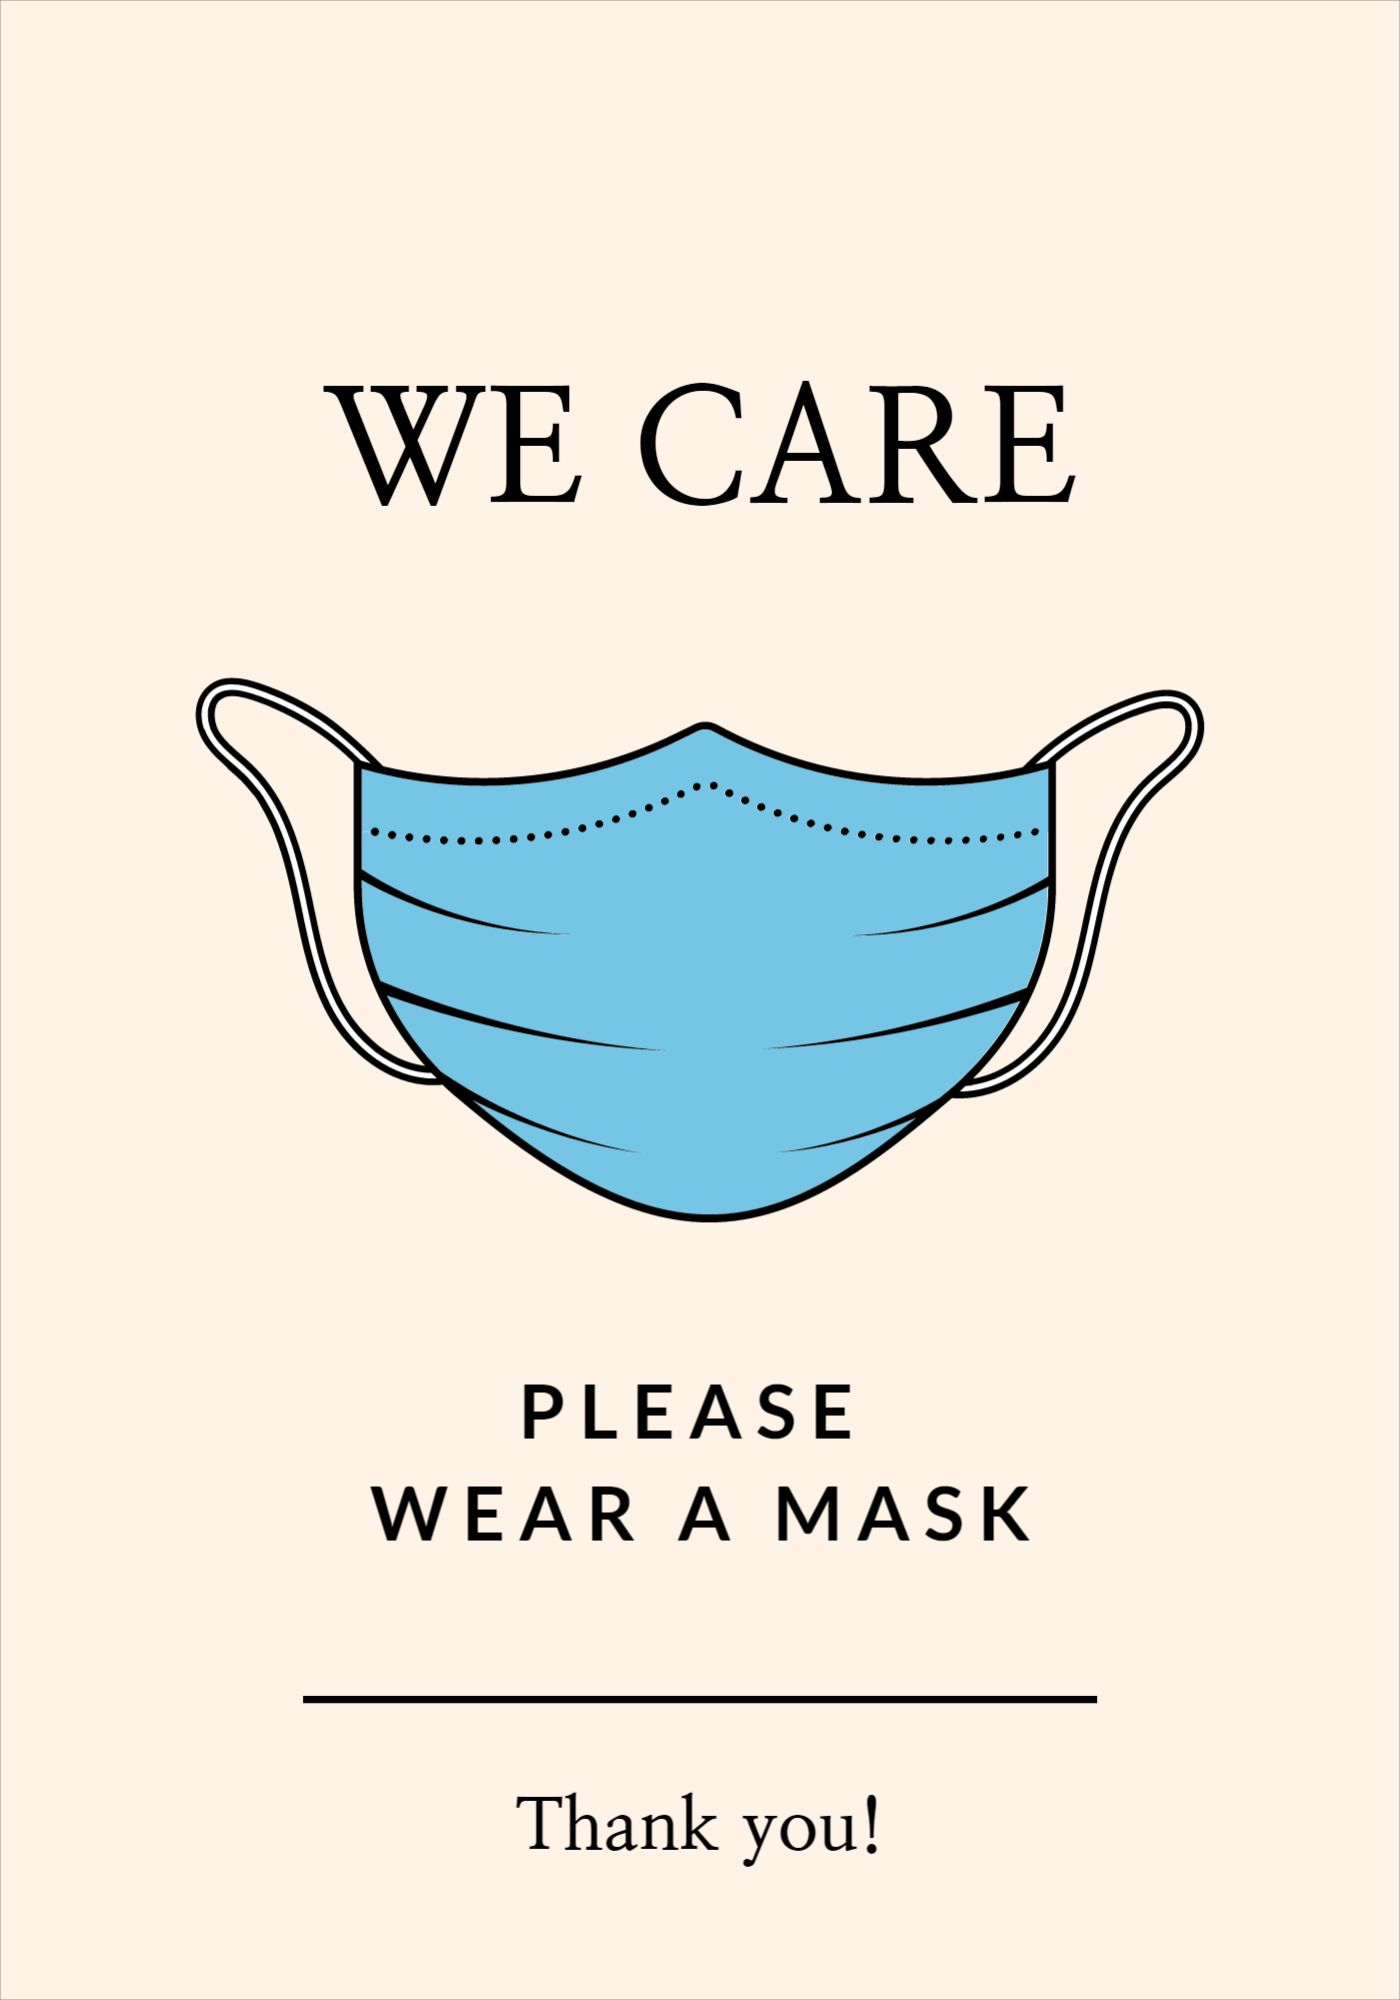 We Care Mask Covid Poster Template